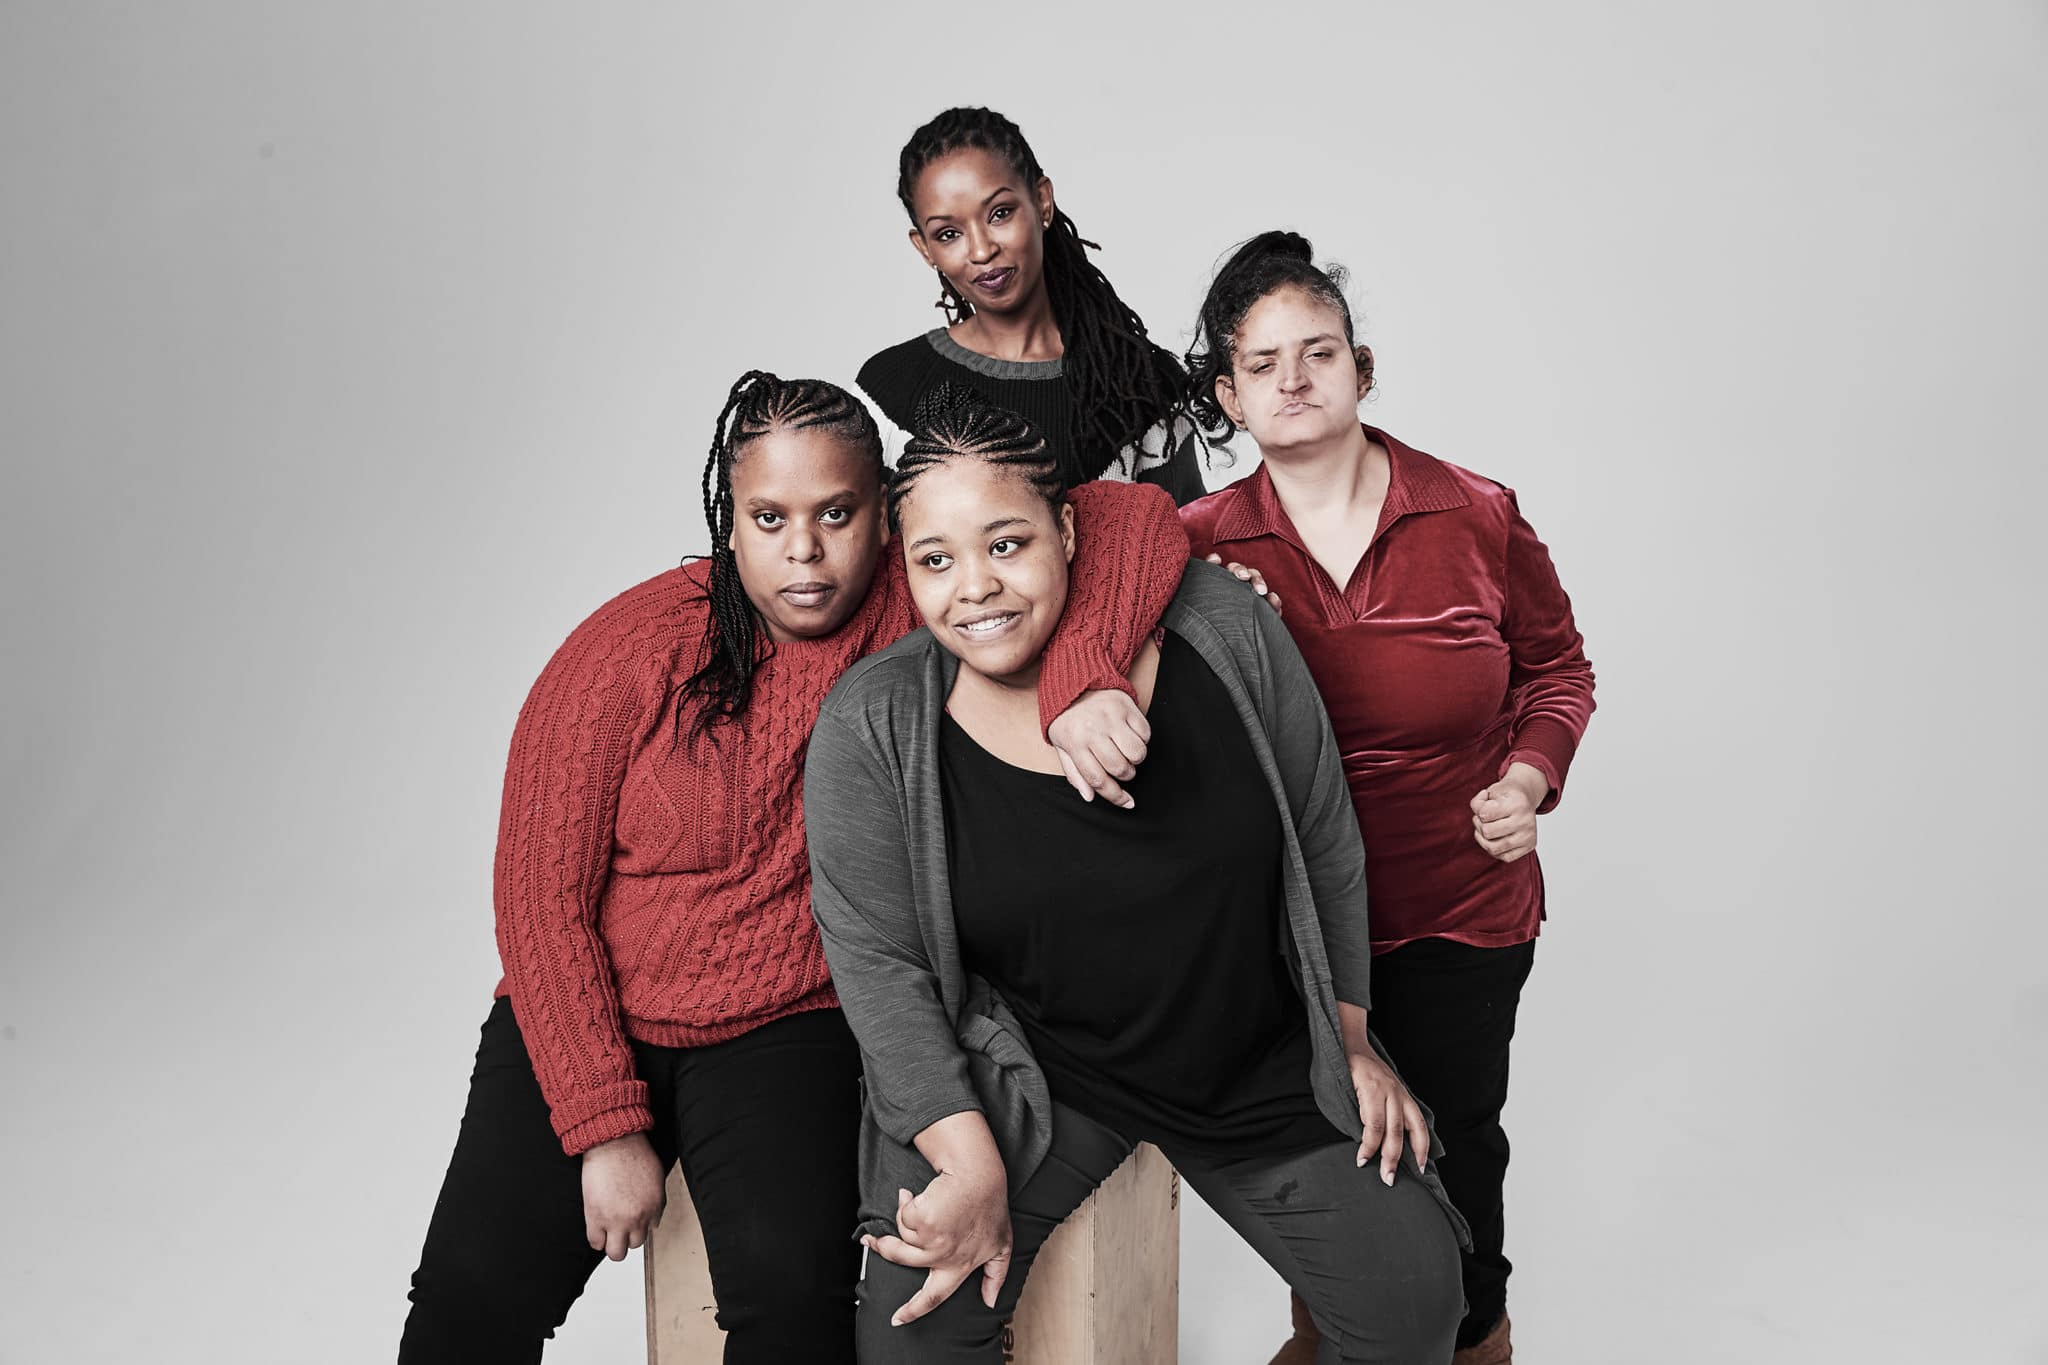 Community Options group photo of 4 individuals